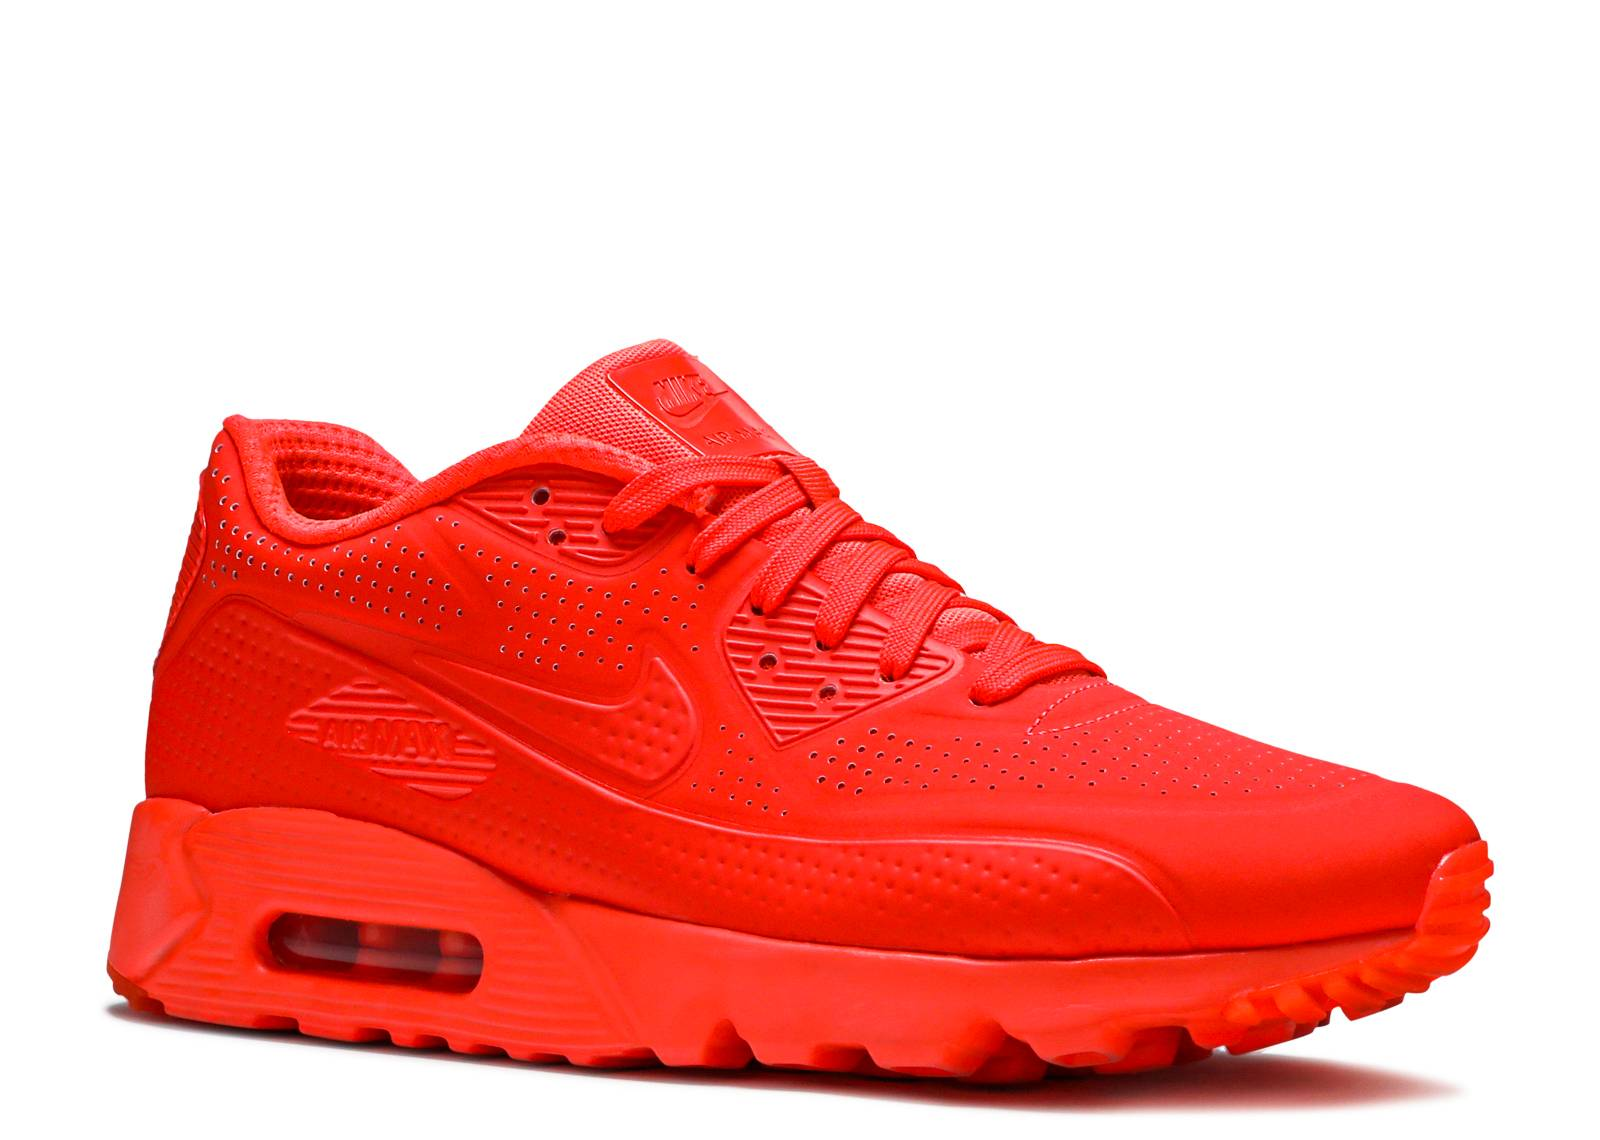 air max 90 ultra moire nike 819477 600 bright. Black Bedroom Furniture Sets. Home Design Ideas